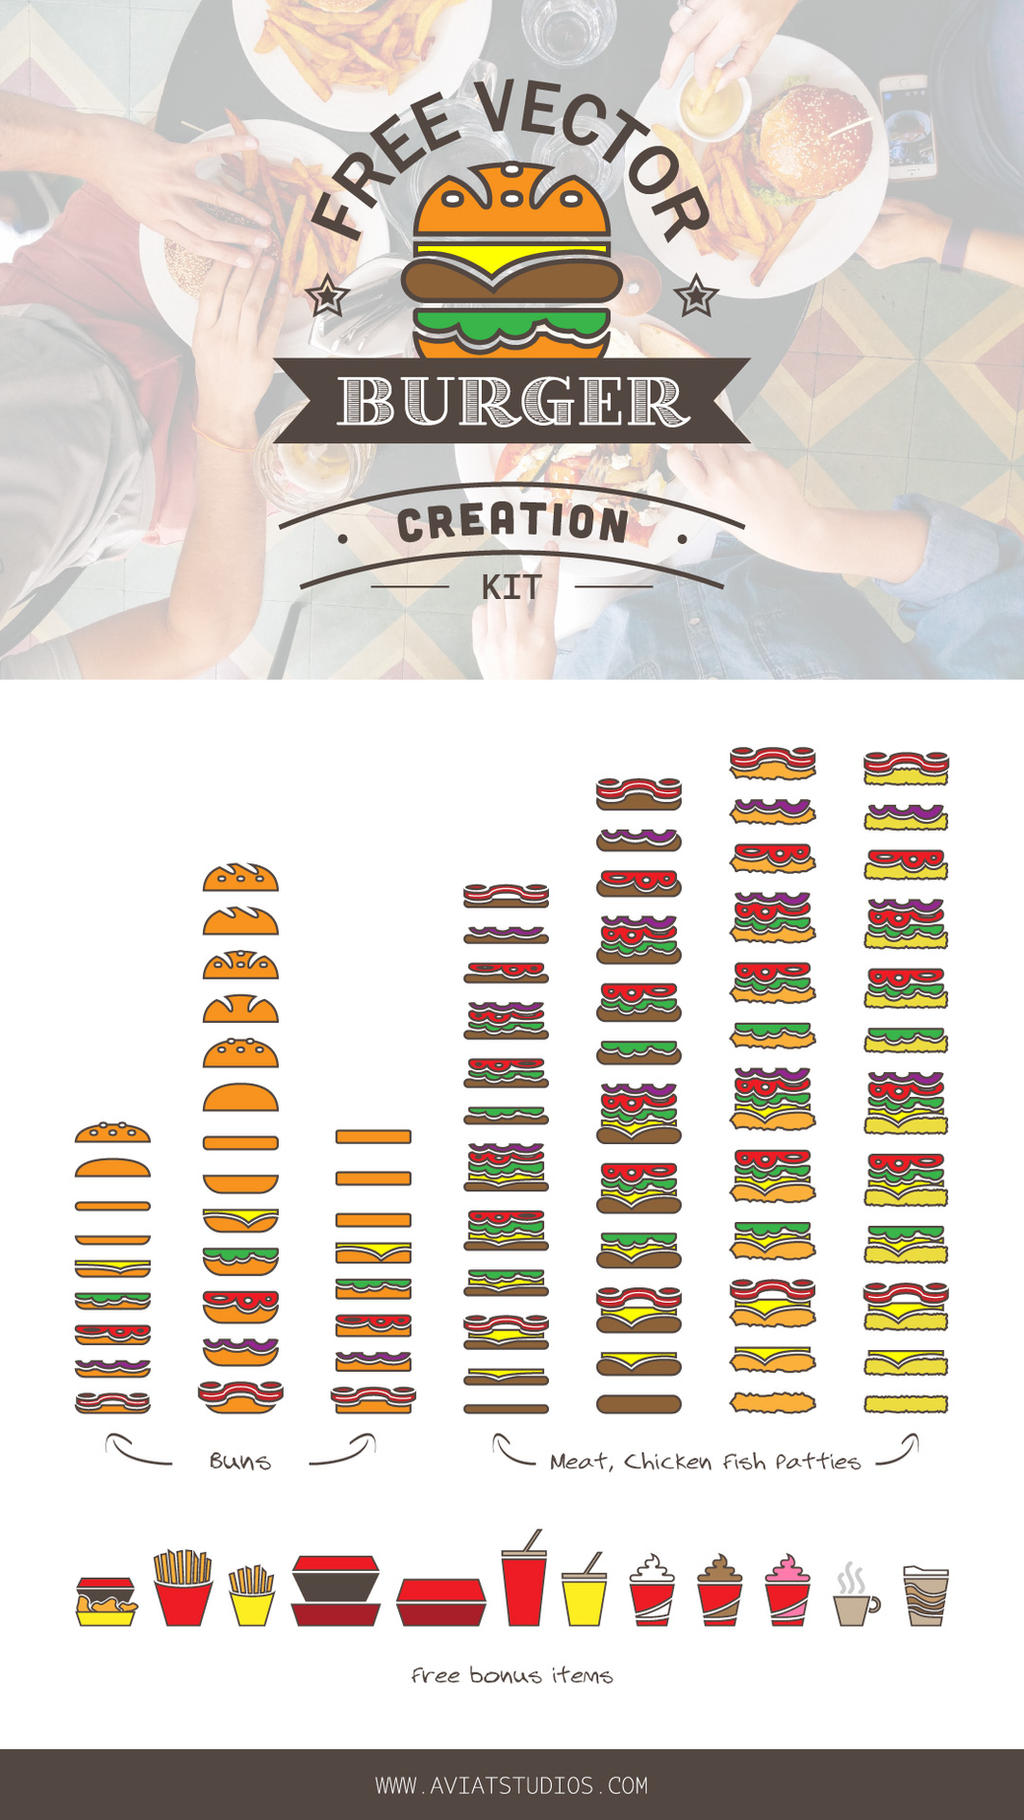 Free Vector Burger Creation Kit by aviatStudios